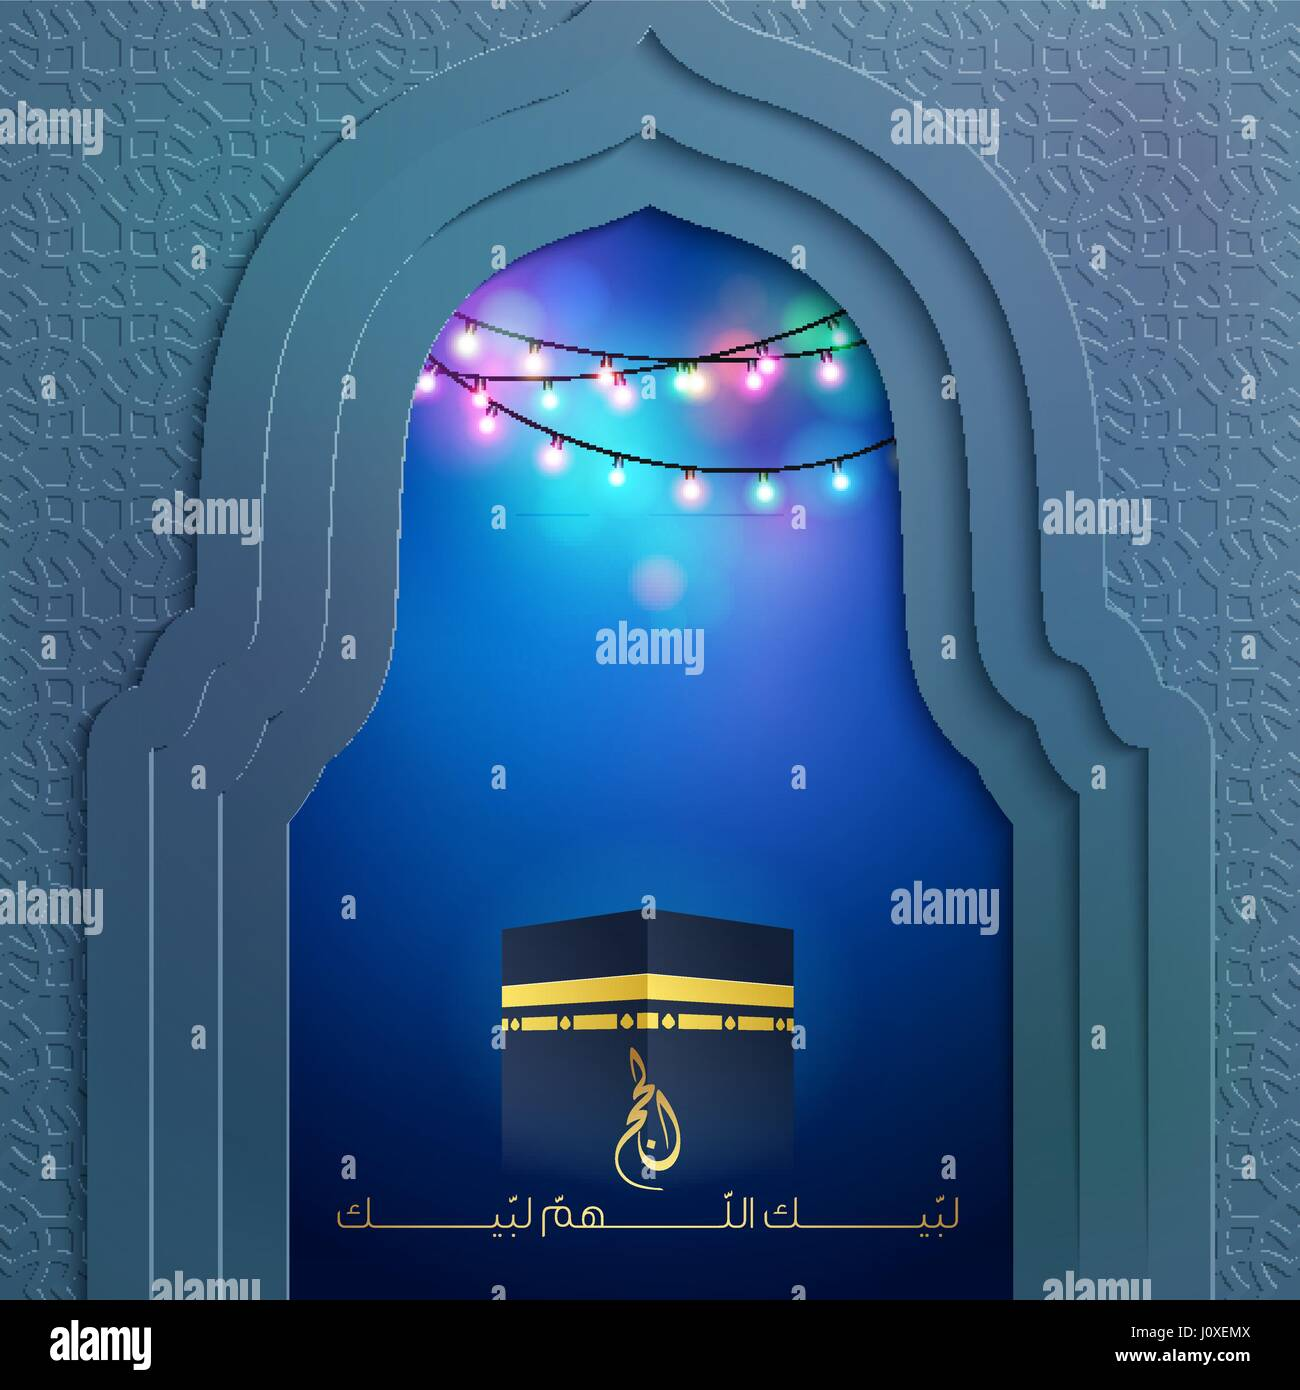 Umrah Banner: Islamic Design Background Mosque Door And Kaaba With